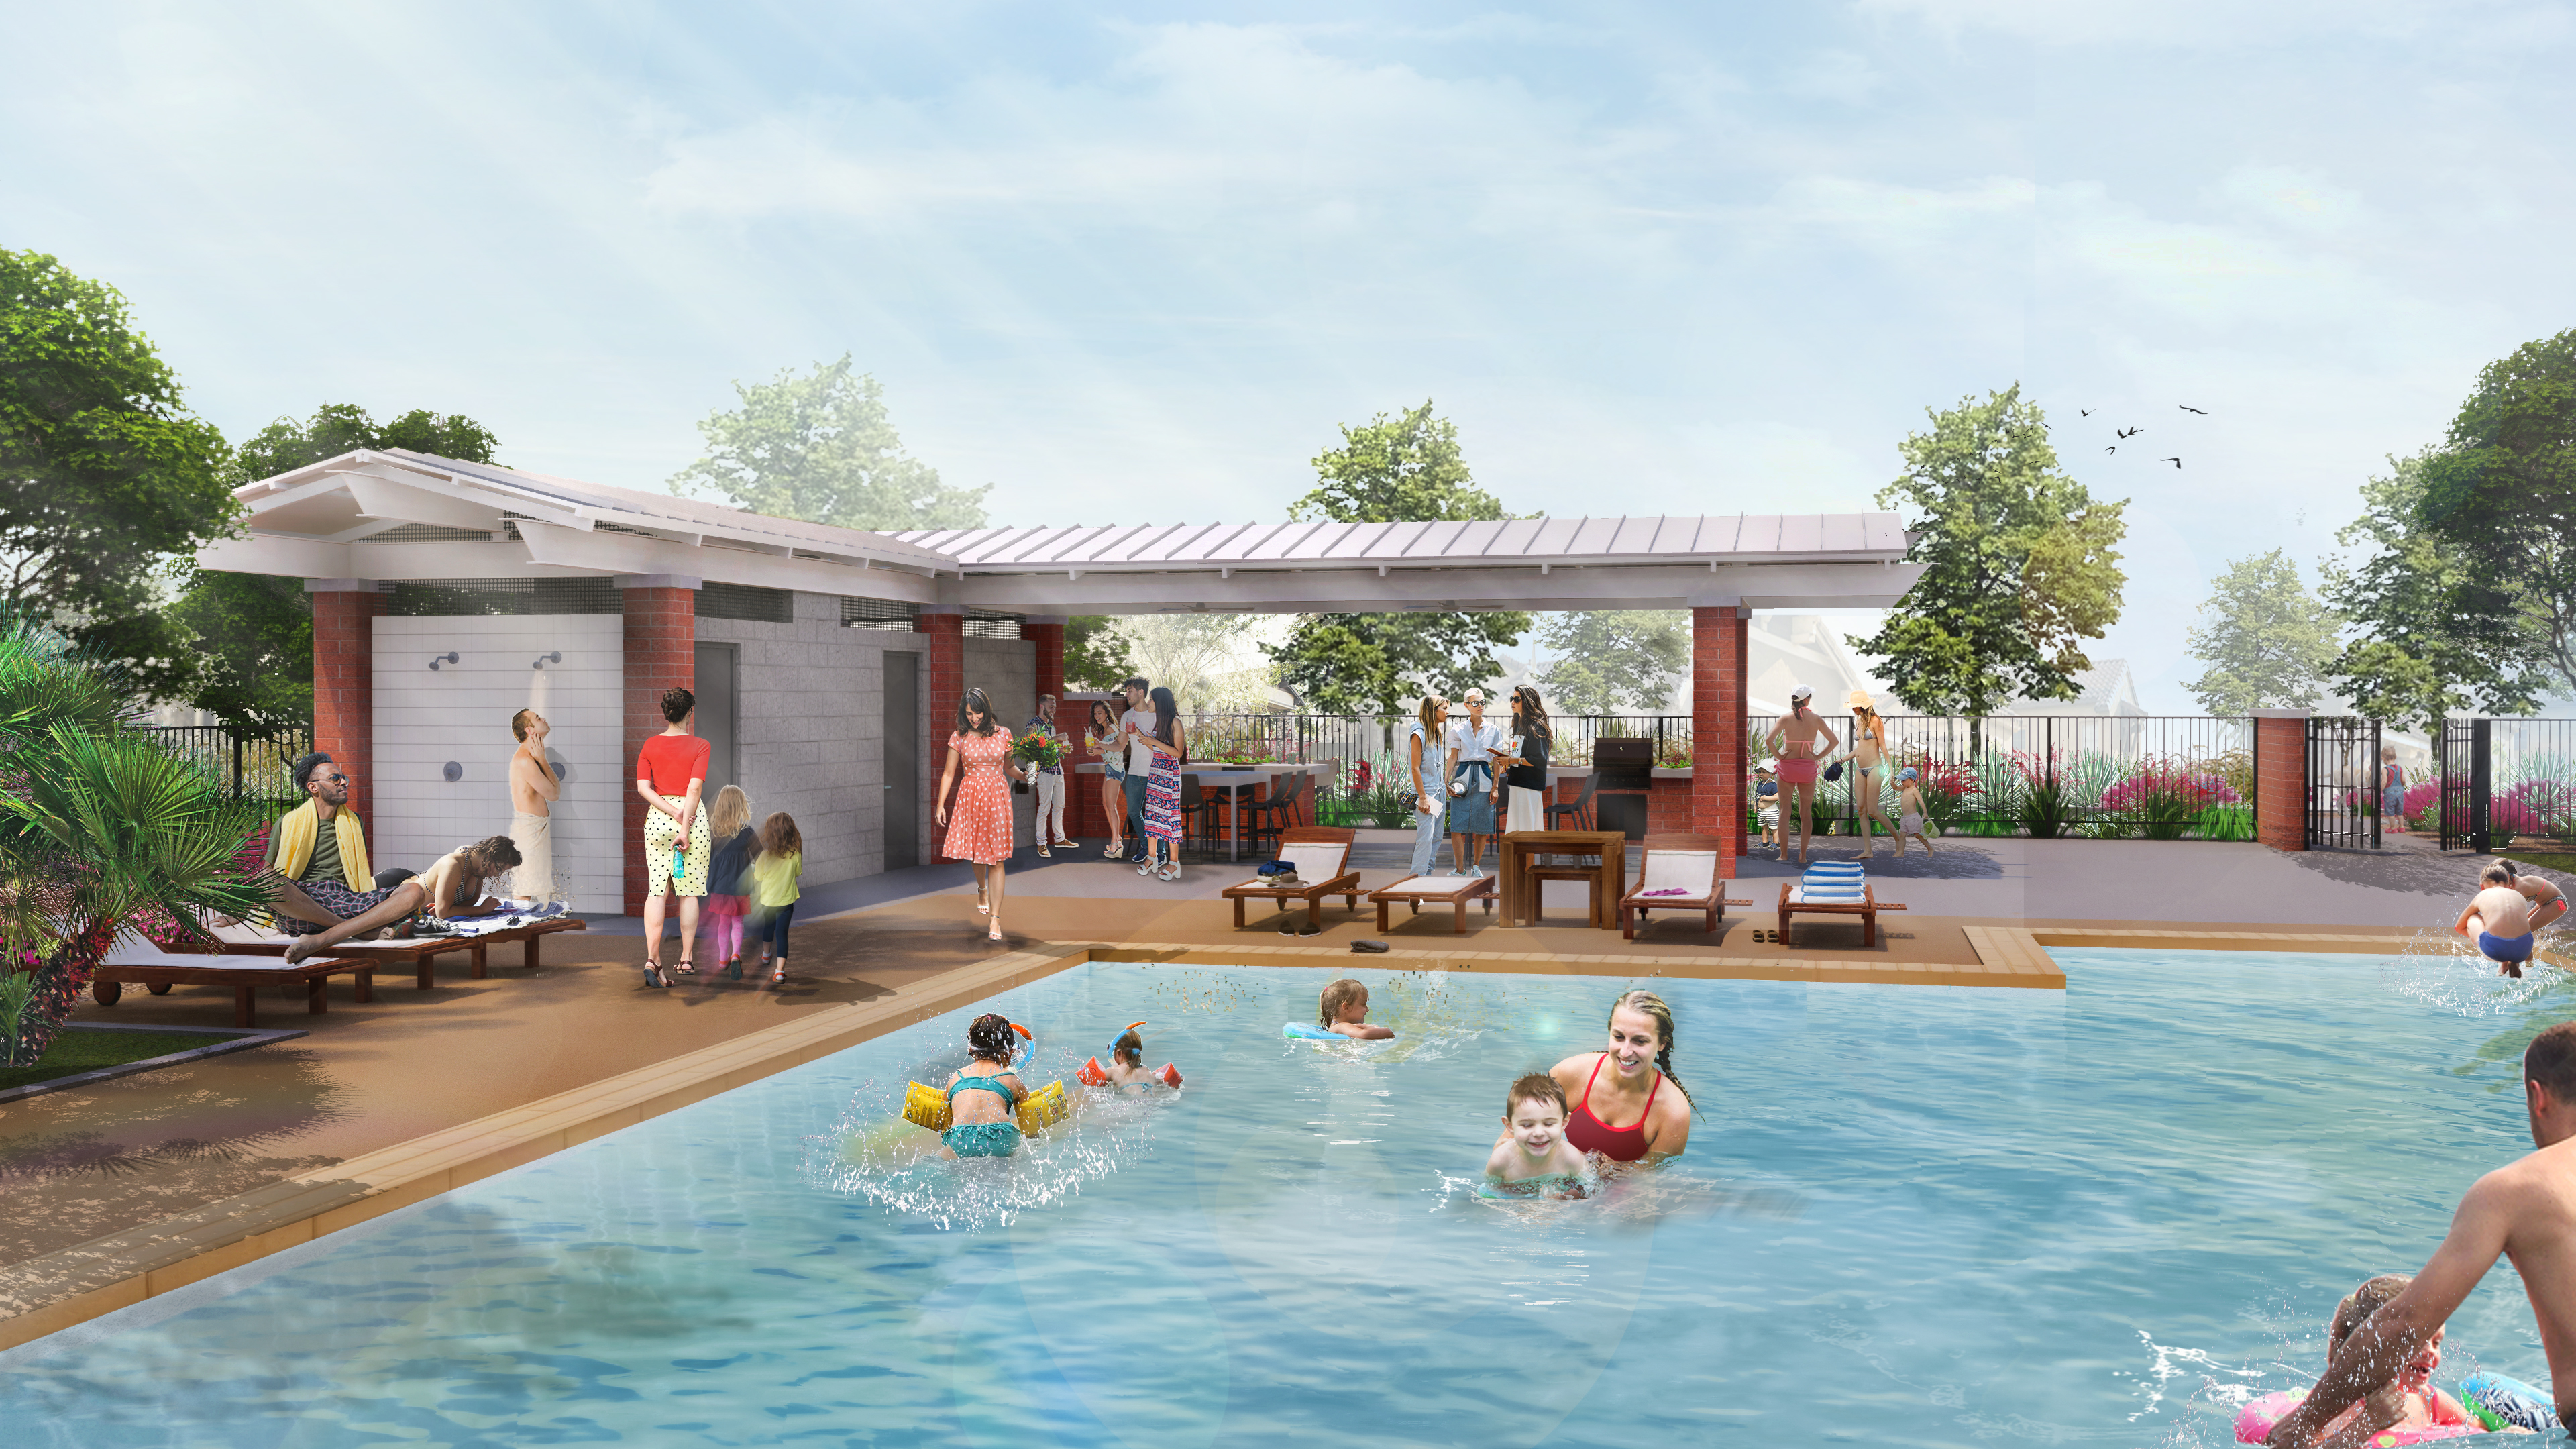 Willow Swim Park coming to Marley Park in 2019 - Marley Park on ritz carlton pool, red roof pool, radisson pool, best inn pool, springhill suites pool, drury inn pool, best western pool, comfort suites pool, marriott pool, quality inn pool, fairmont pool, super 8 motel pool, budget inn pool, americinn pool, wildwood inn pool, shangri la pool, ramda indoor pool, sleep inn pool, la quinta inn pool, hyatt place pool,